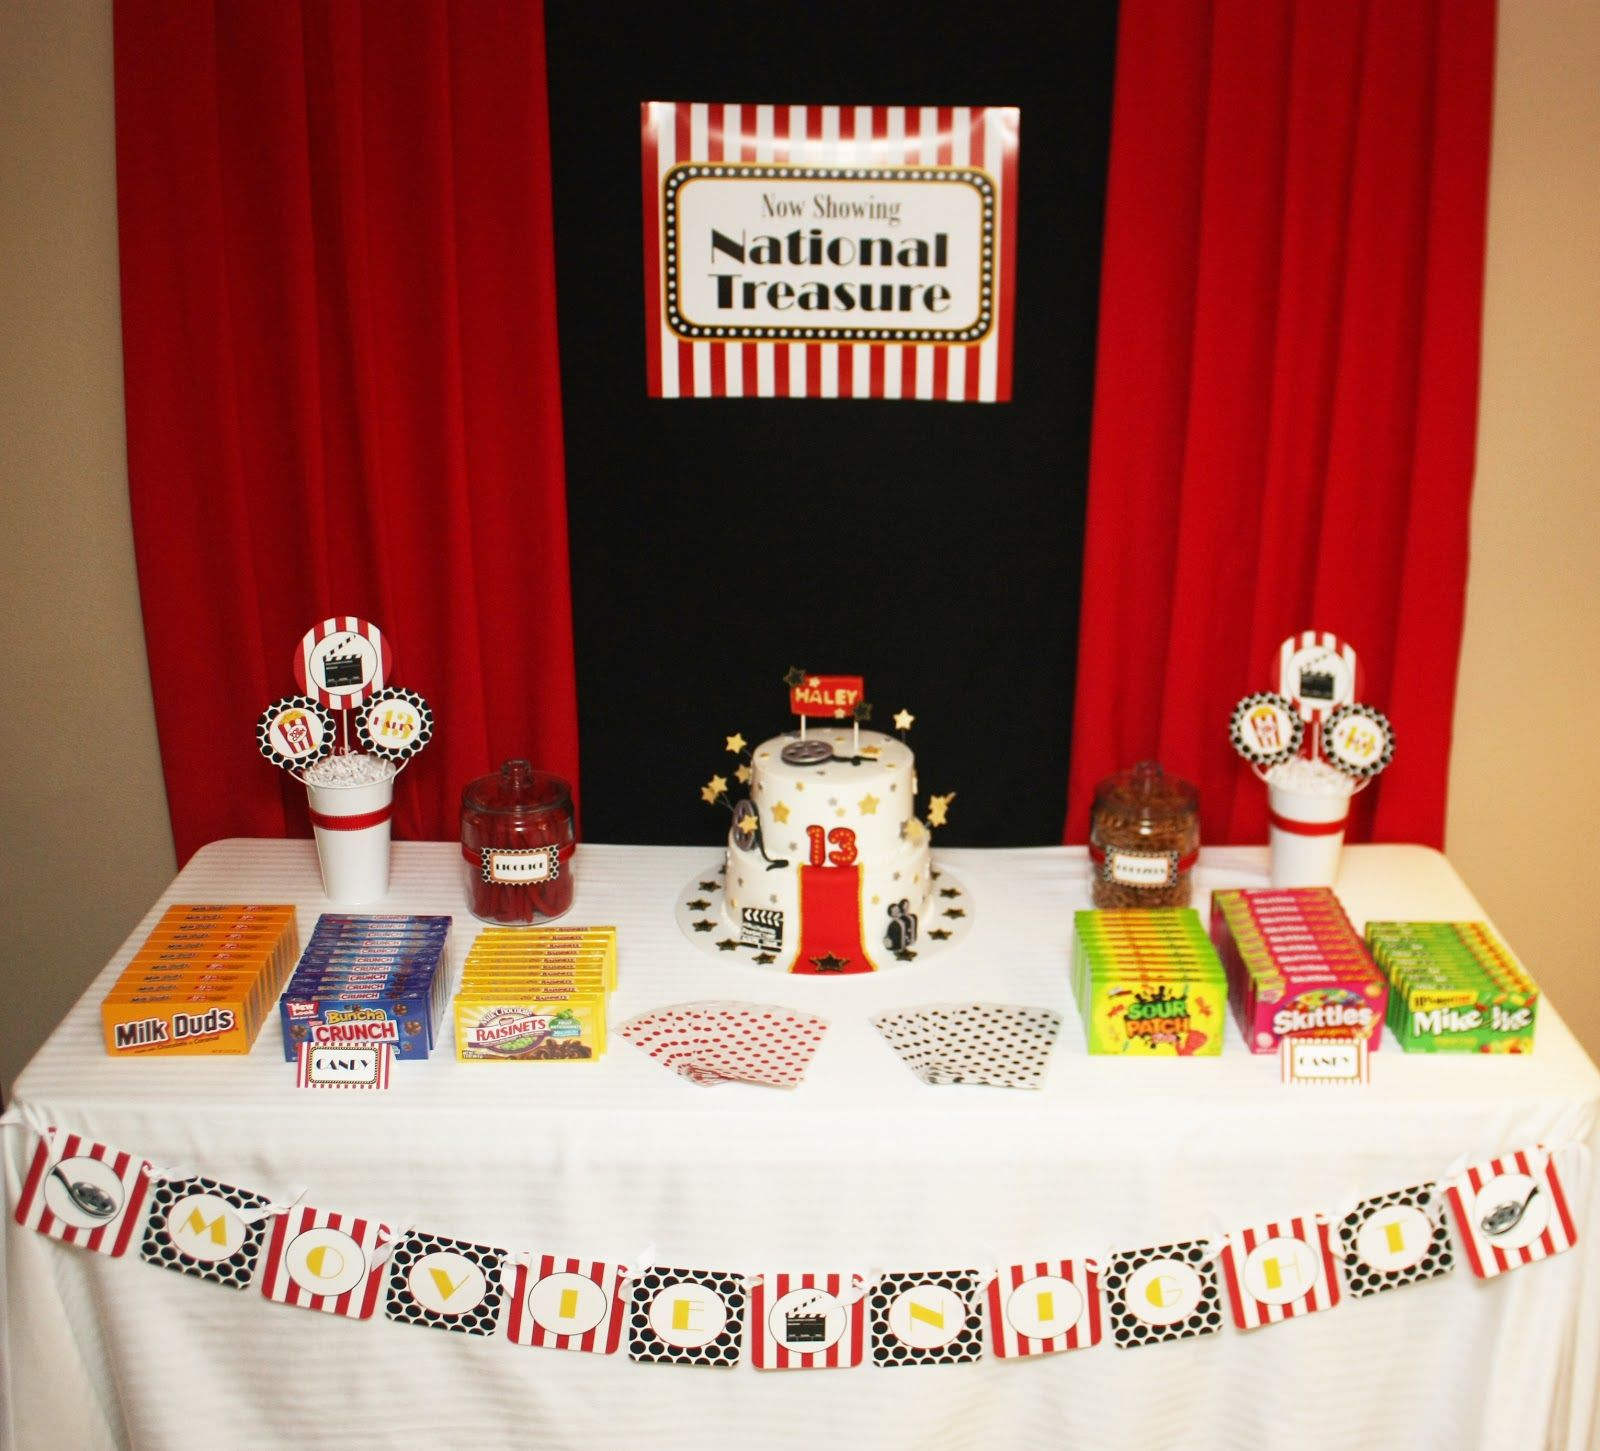 10+ 13th birthday party ideas in march ideas in 2021